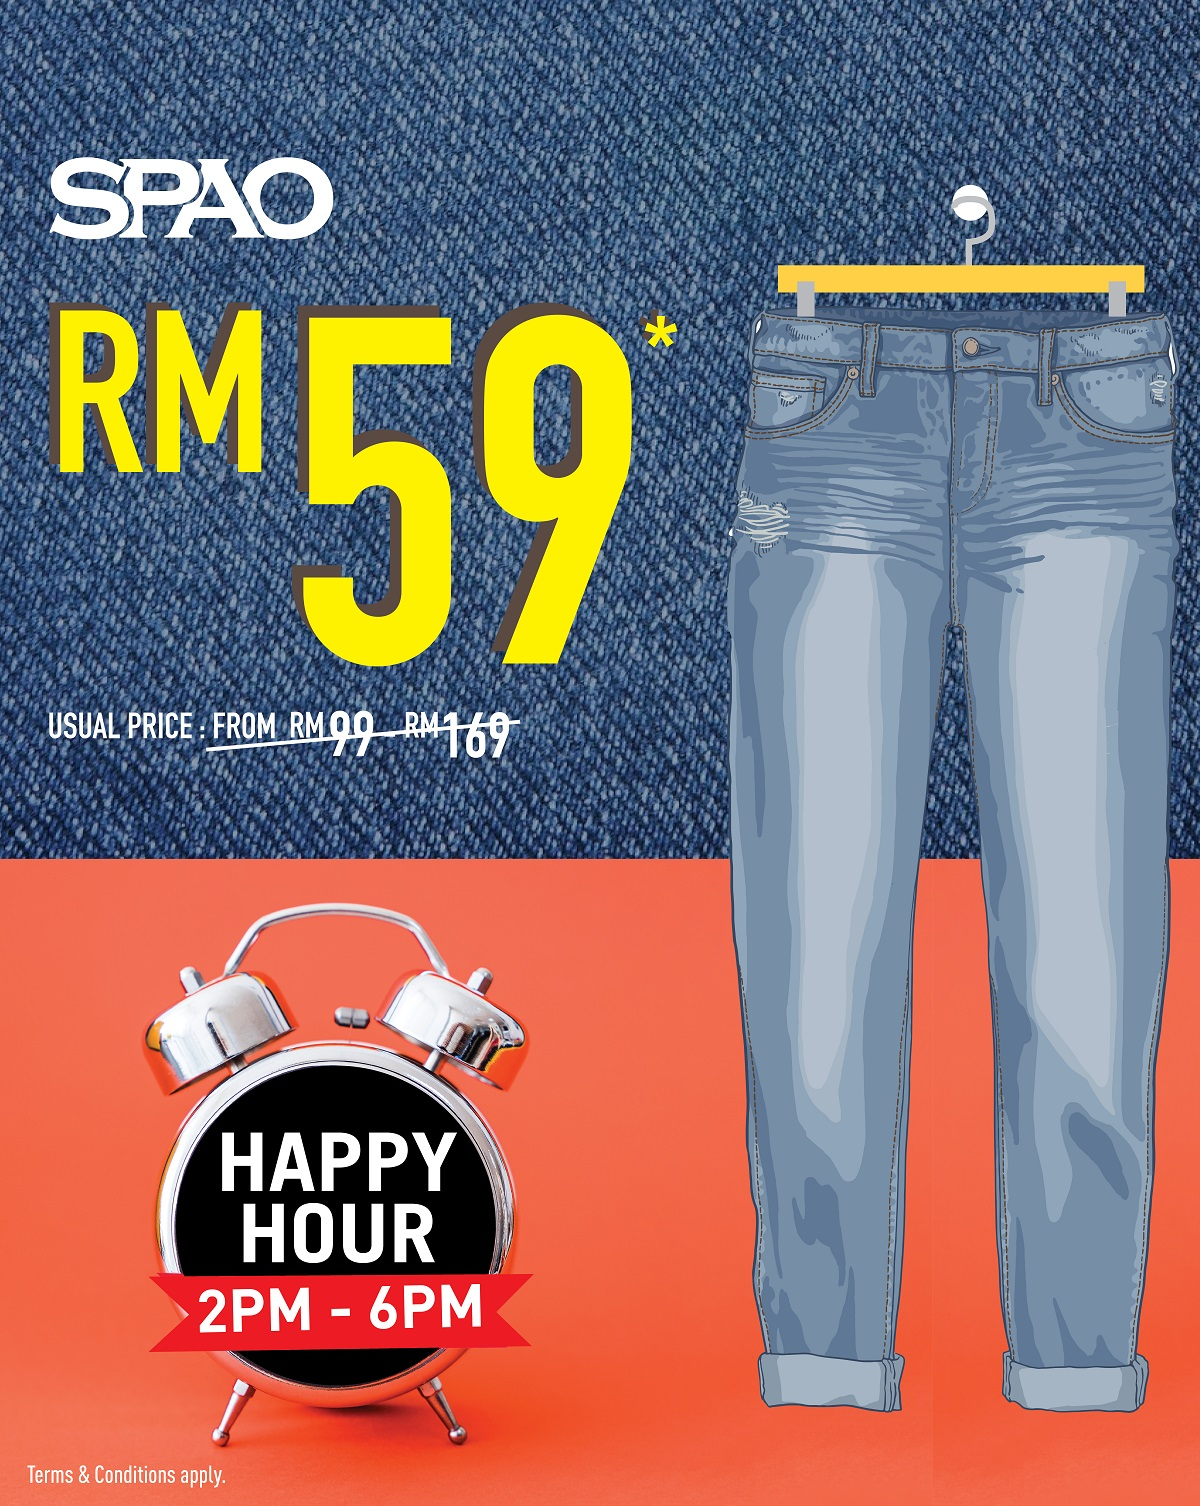 SPAO Happy Hour Denim_Sandwich Board-01